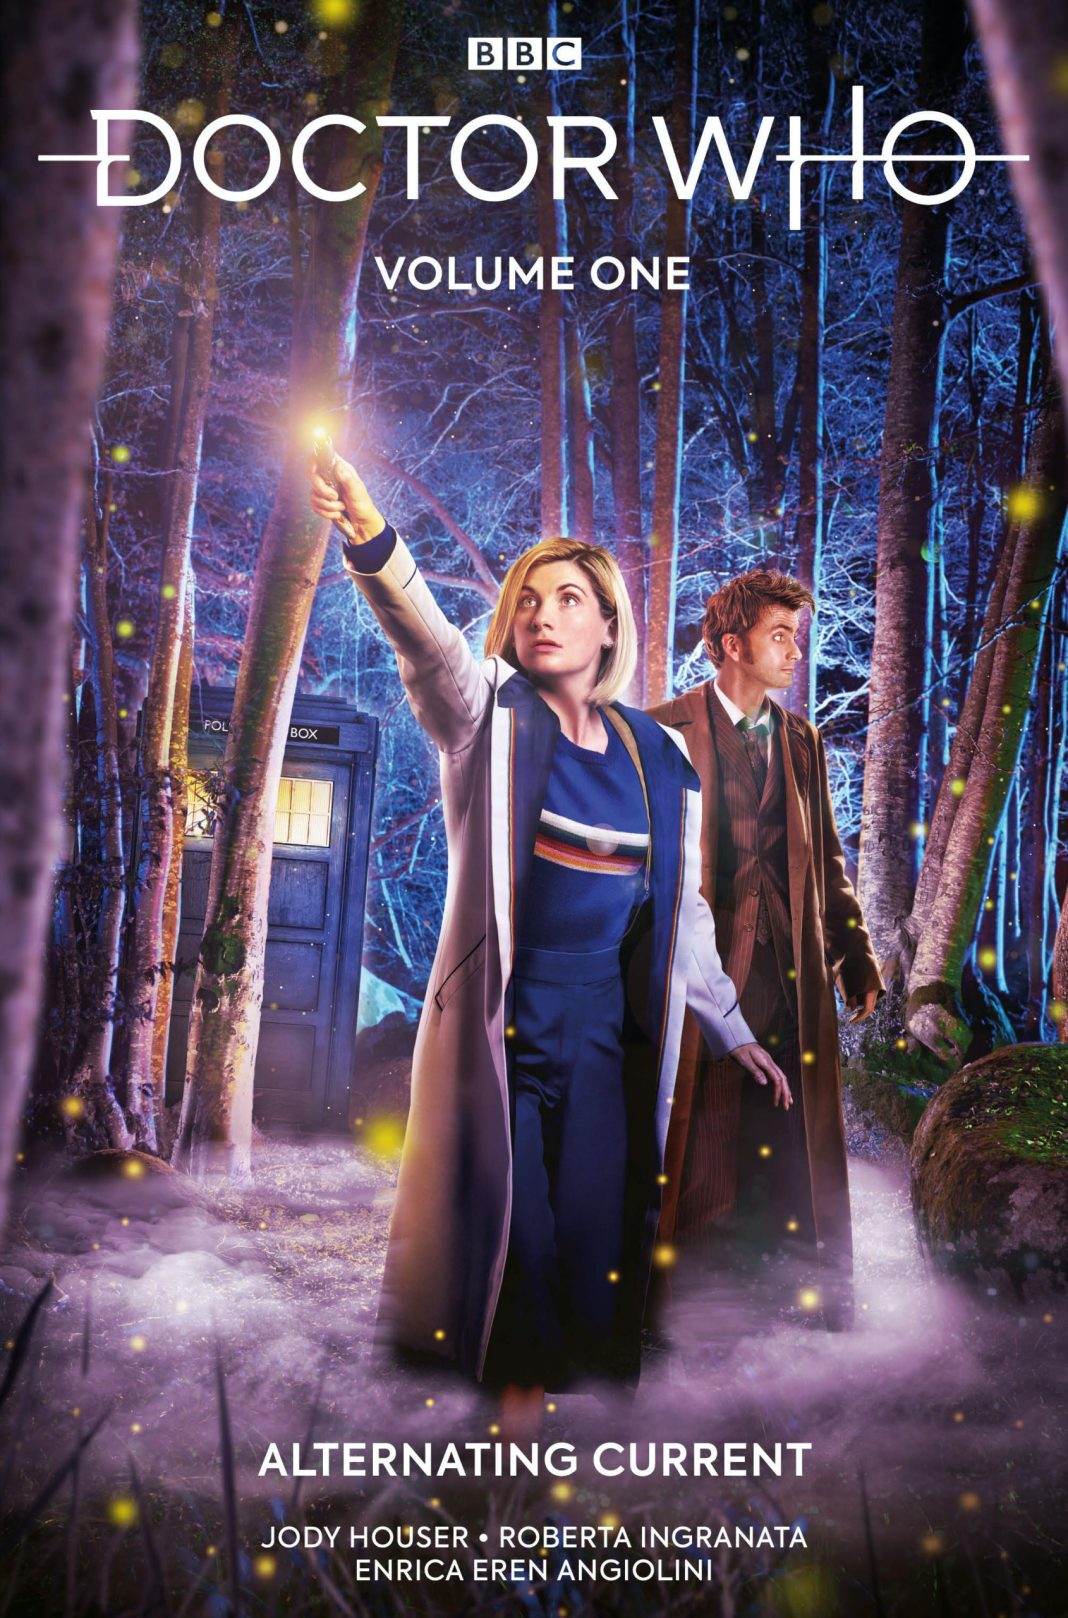 Doctor Who Volume One: Alternating Current. Cover by Andrew Leung, (c) Titan Comics Tenth Doctor Thirteenth Doctor Jody Houser